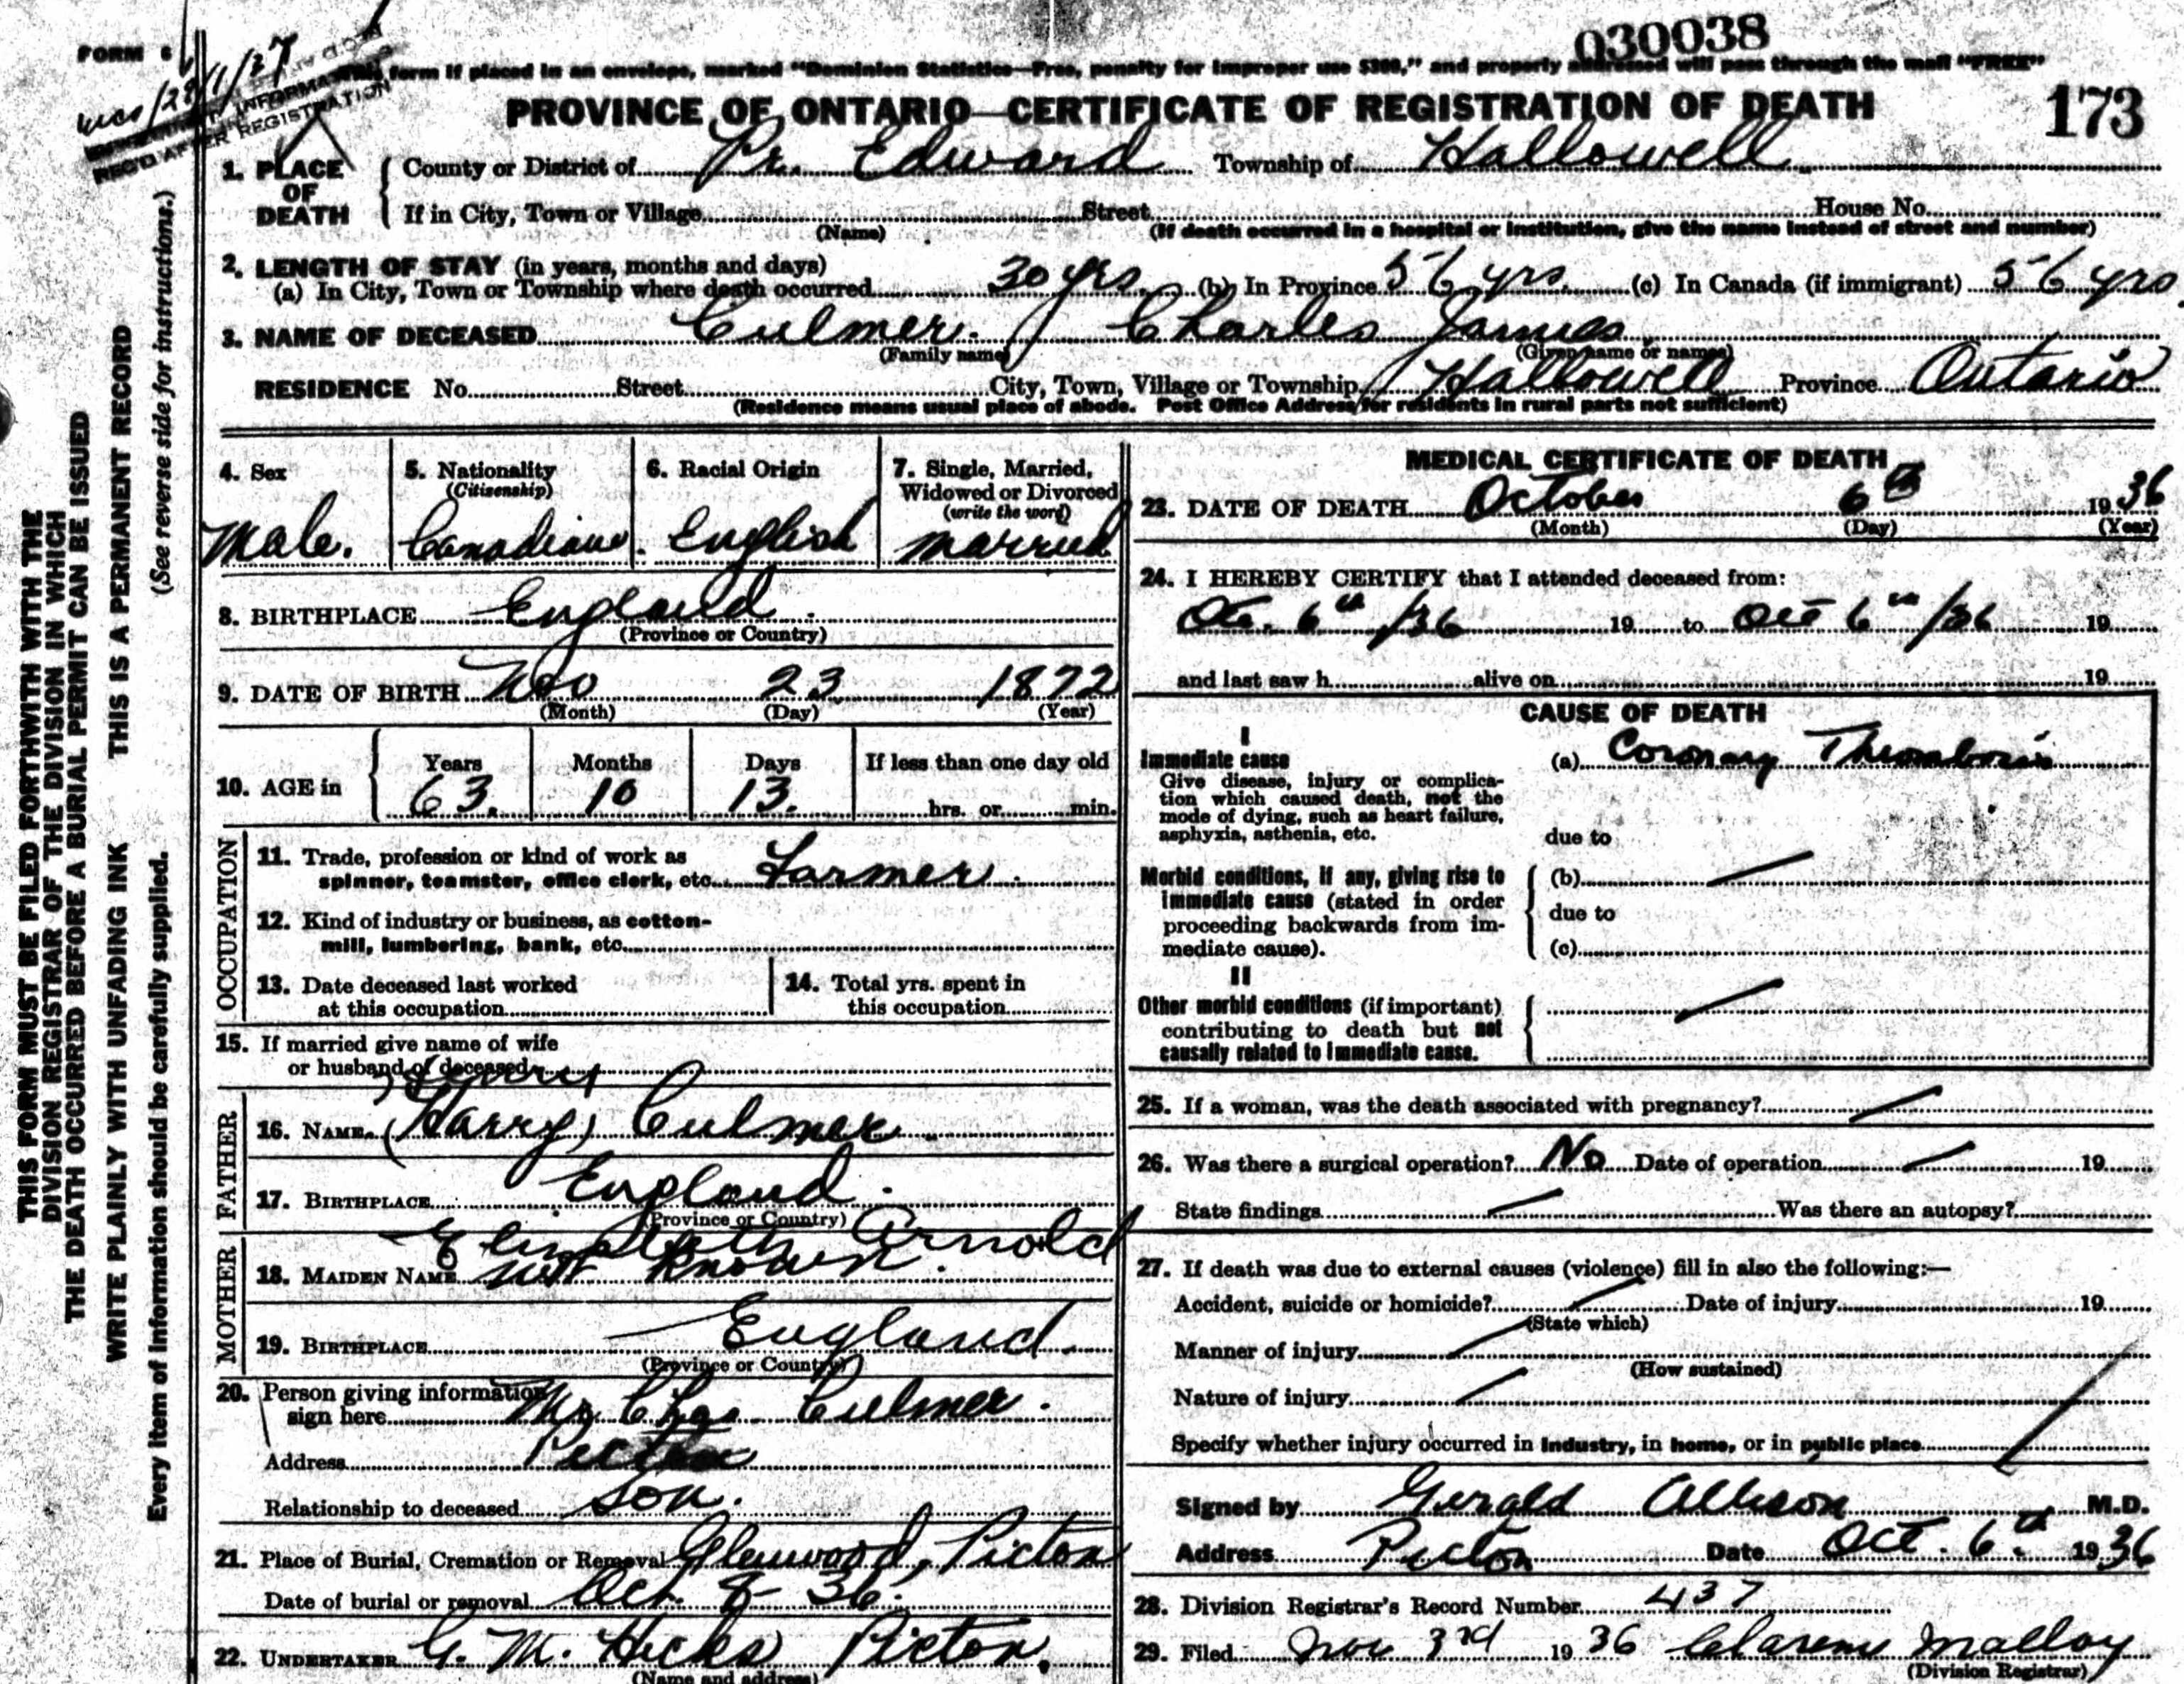 Charles James Culmer - Death Certificate